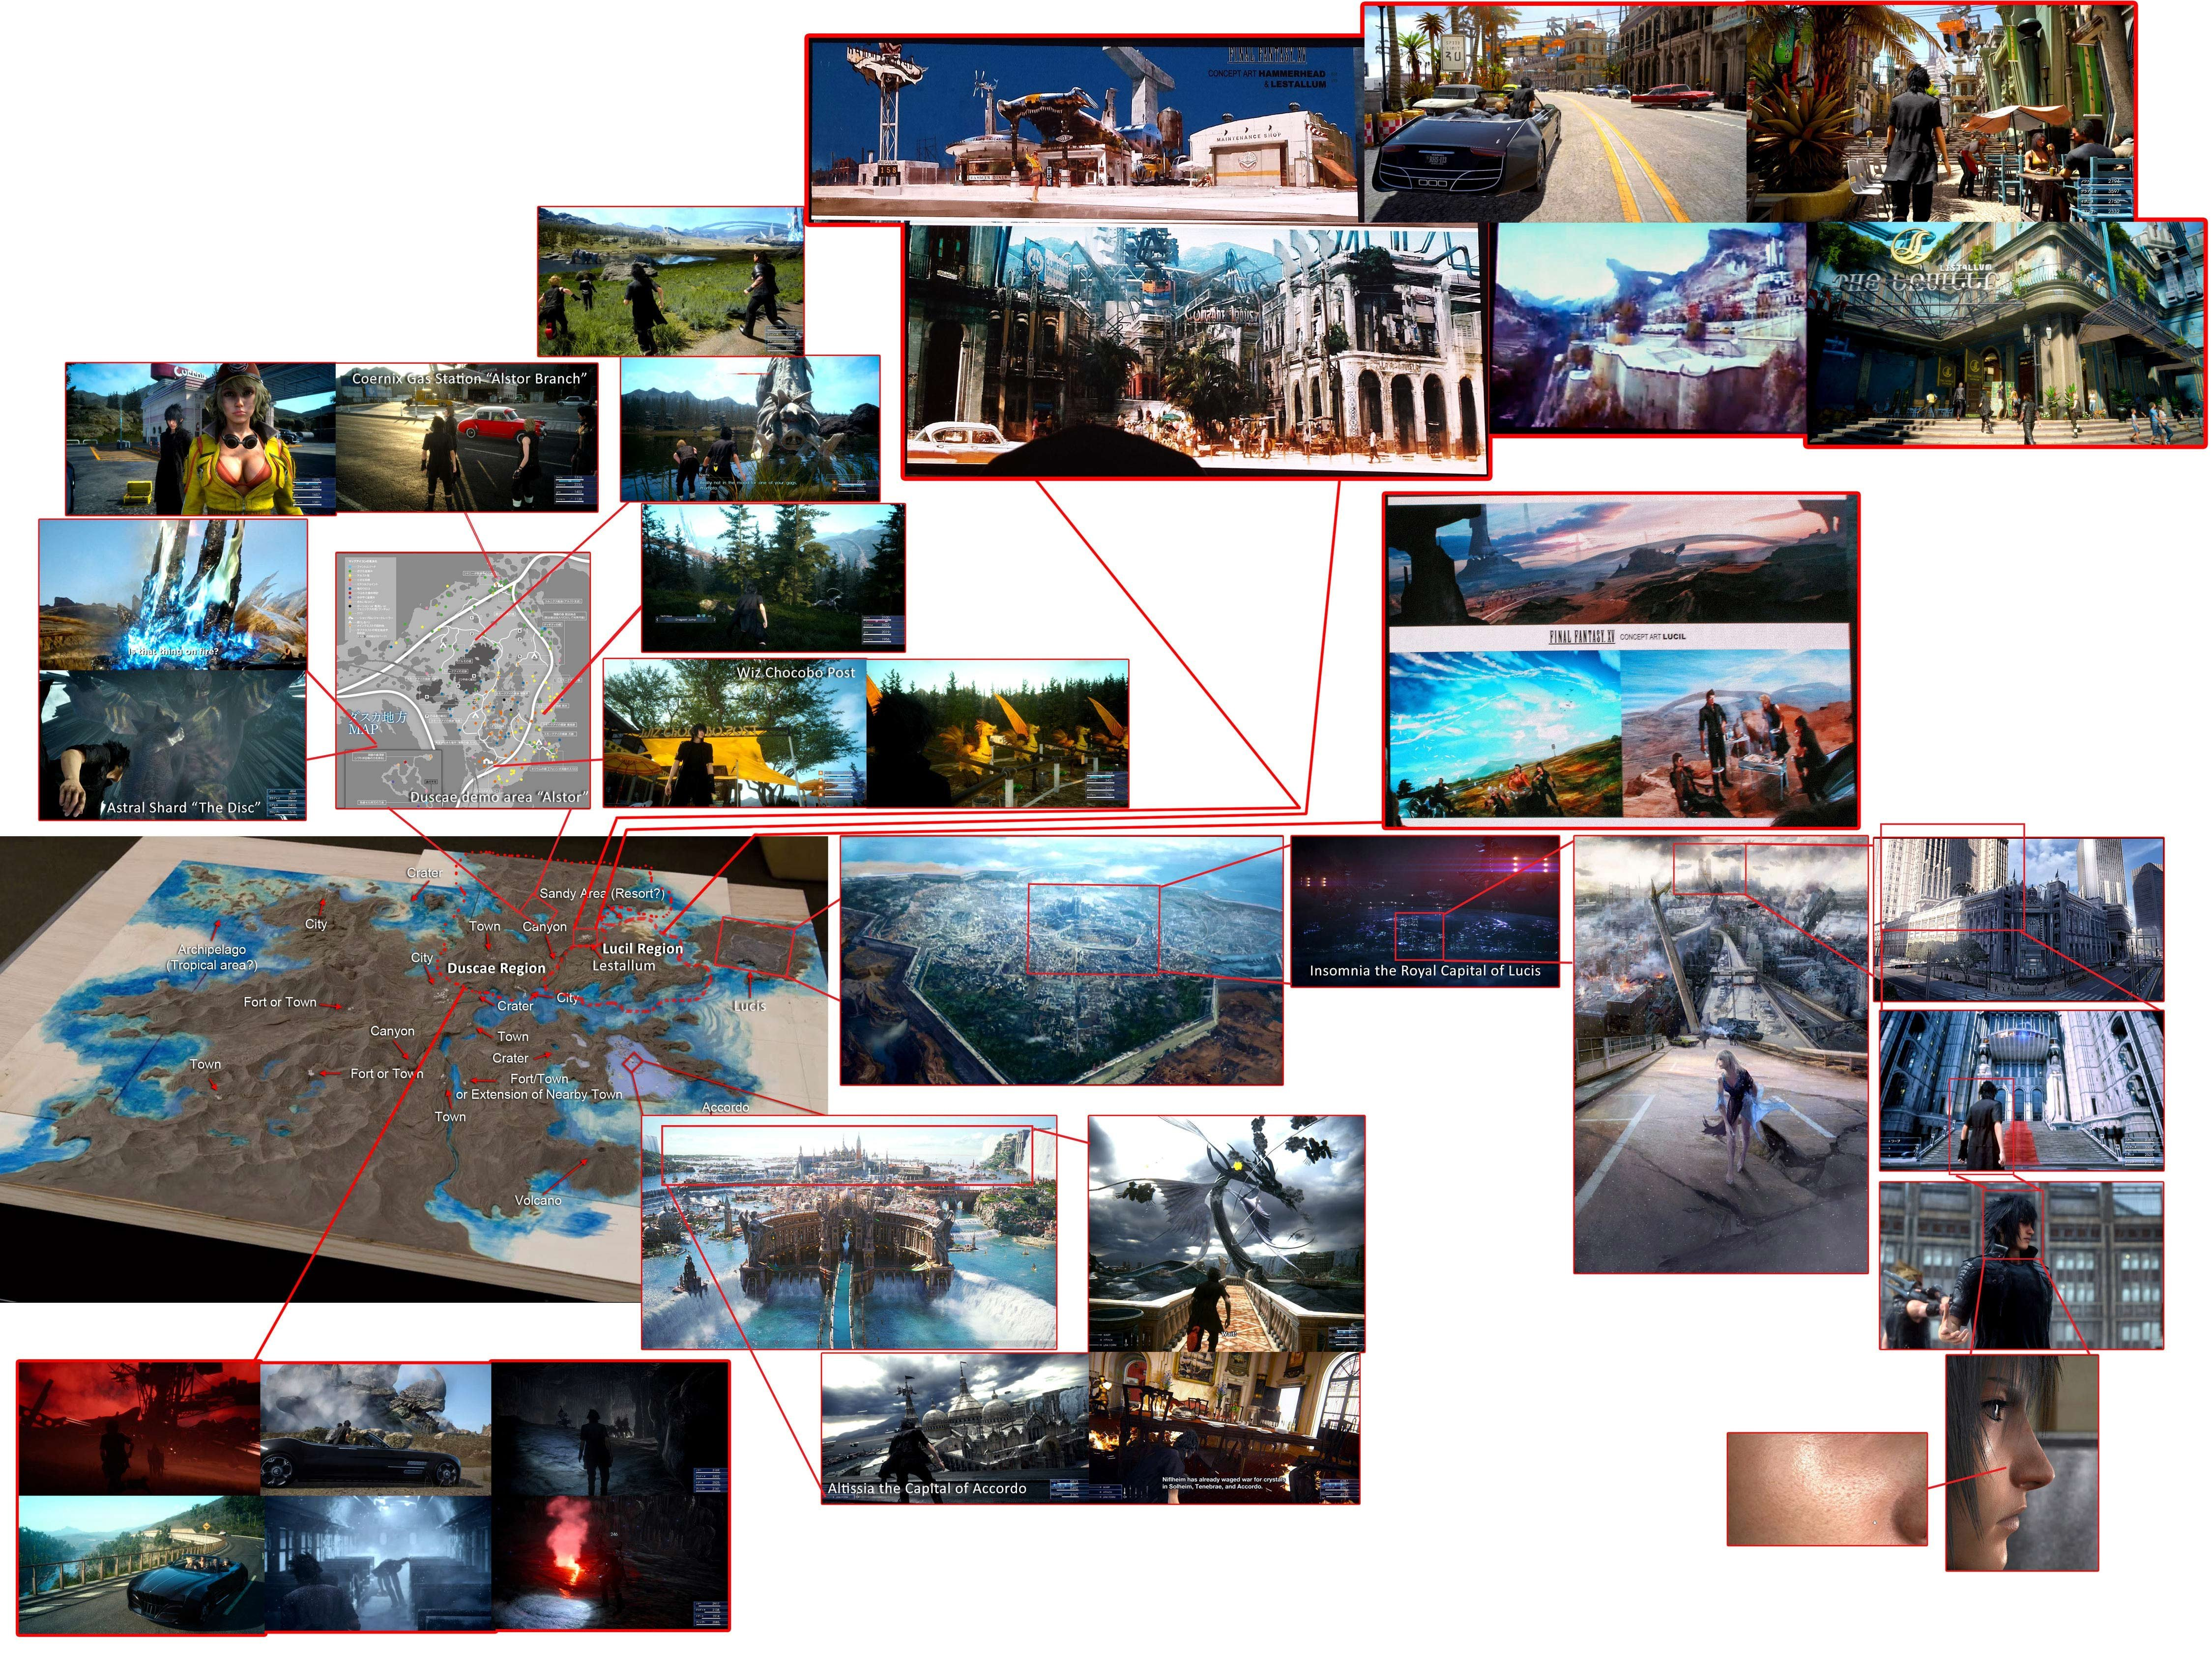 Final fantasy xv map size revealed its about ten times as big as httpsadisquscdnuploadsmediaembedimages24677332originalg gumiabroncs Images